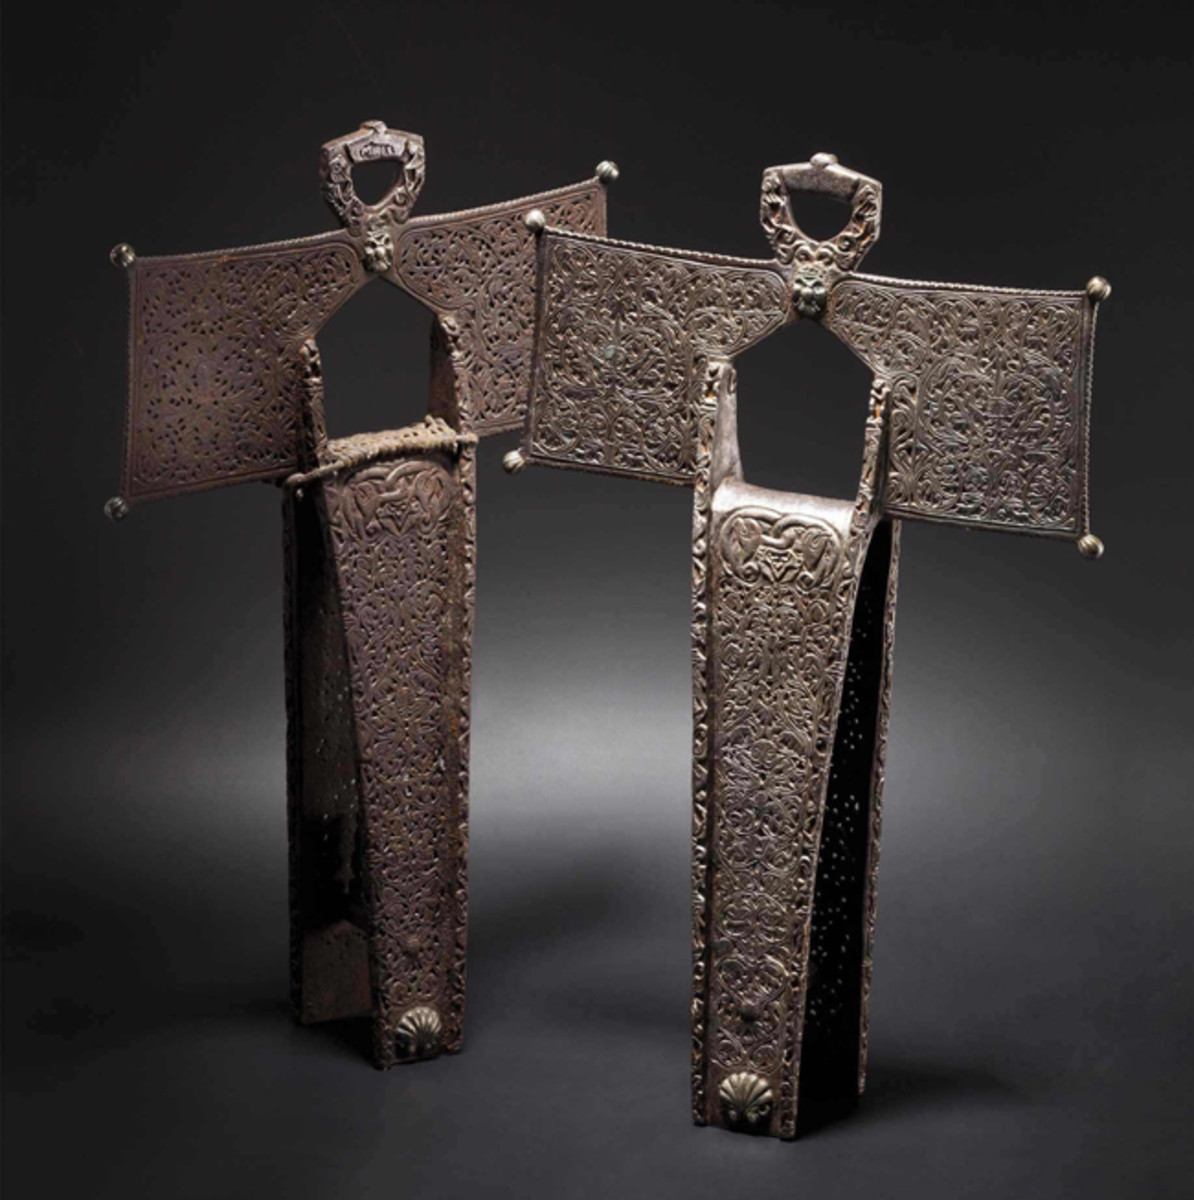 A pair of chiseled deluxe stirrups, colonial Spain, 17th century.